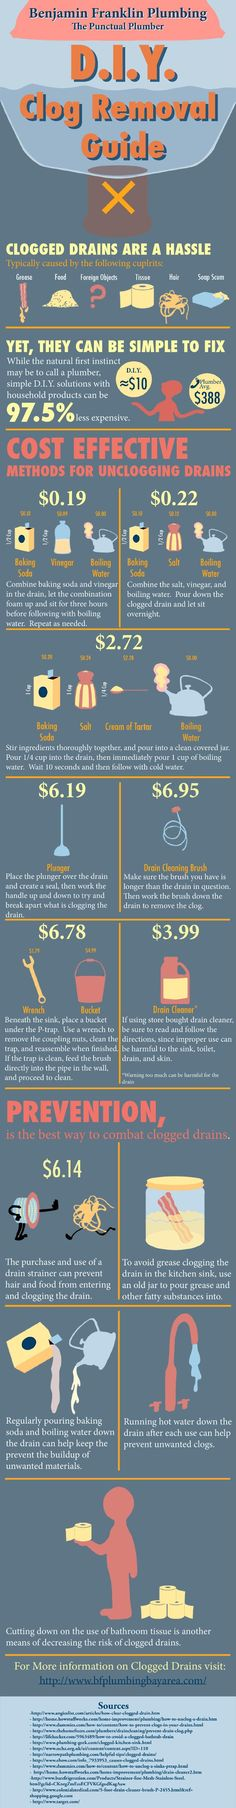 Do-It-Yourself Clog Removal Guide |